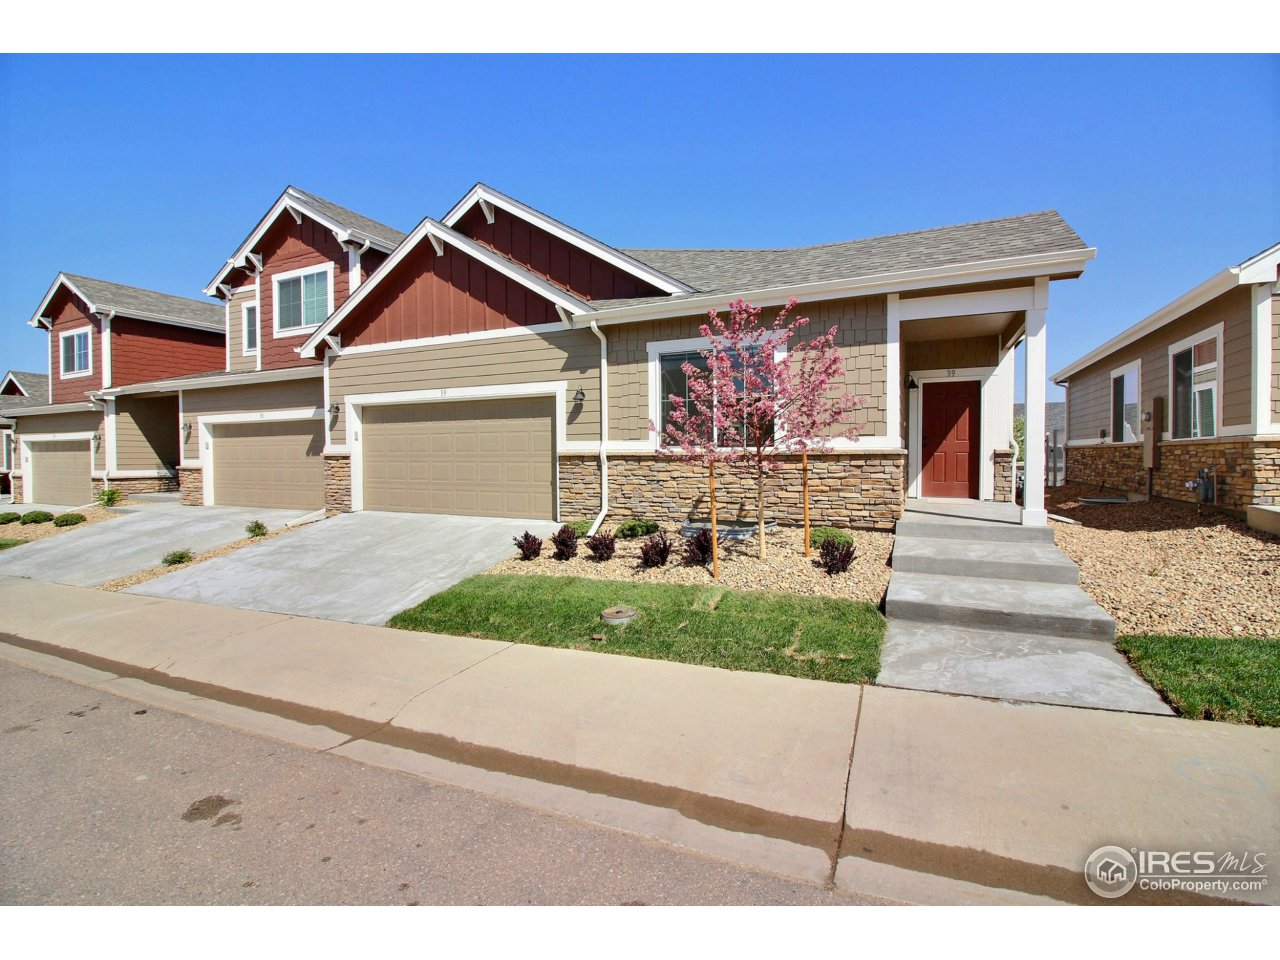 6024 1st St 32, Greeley, CO 80634